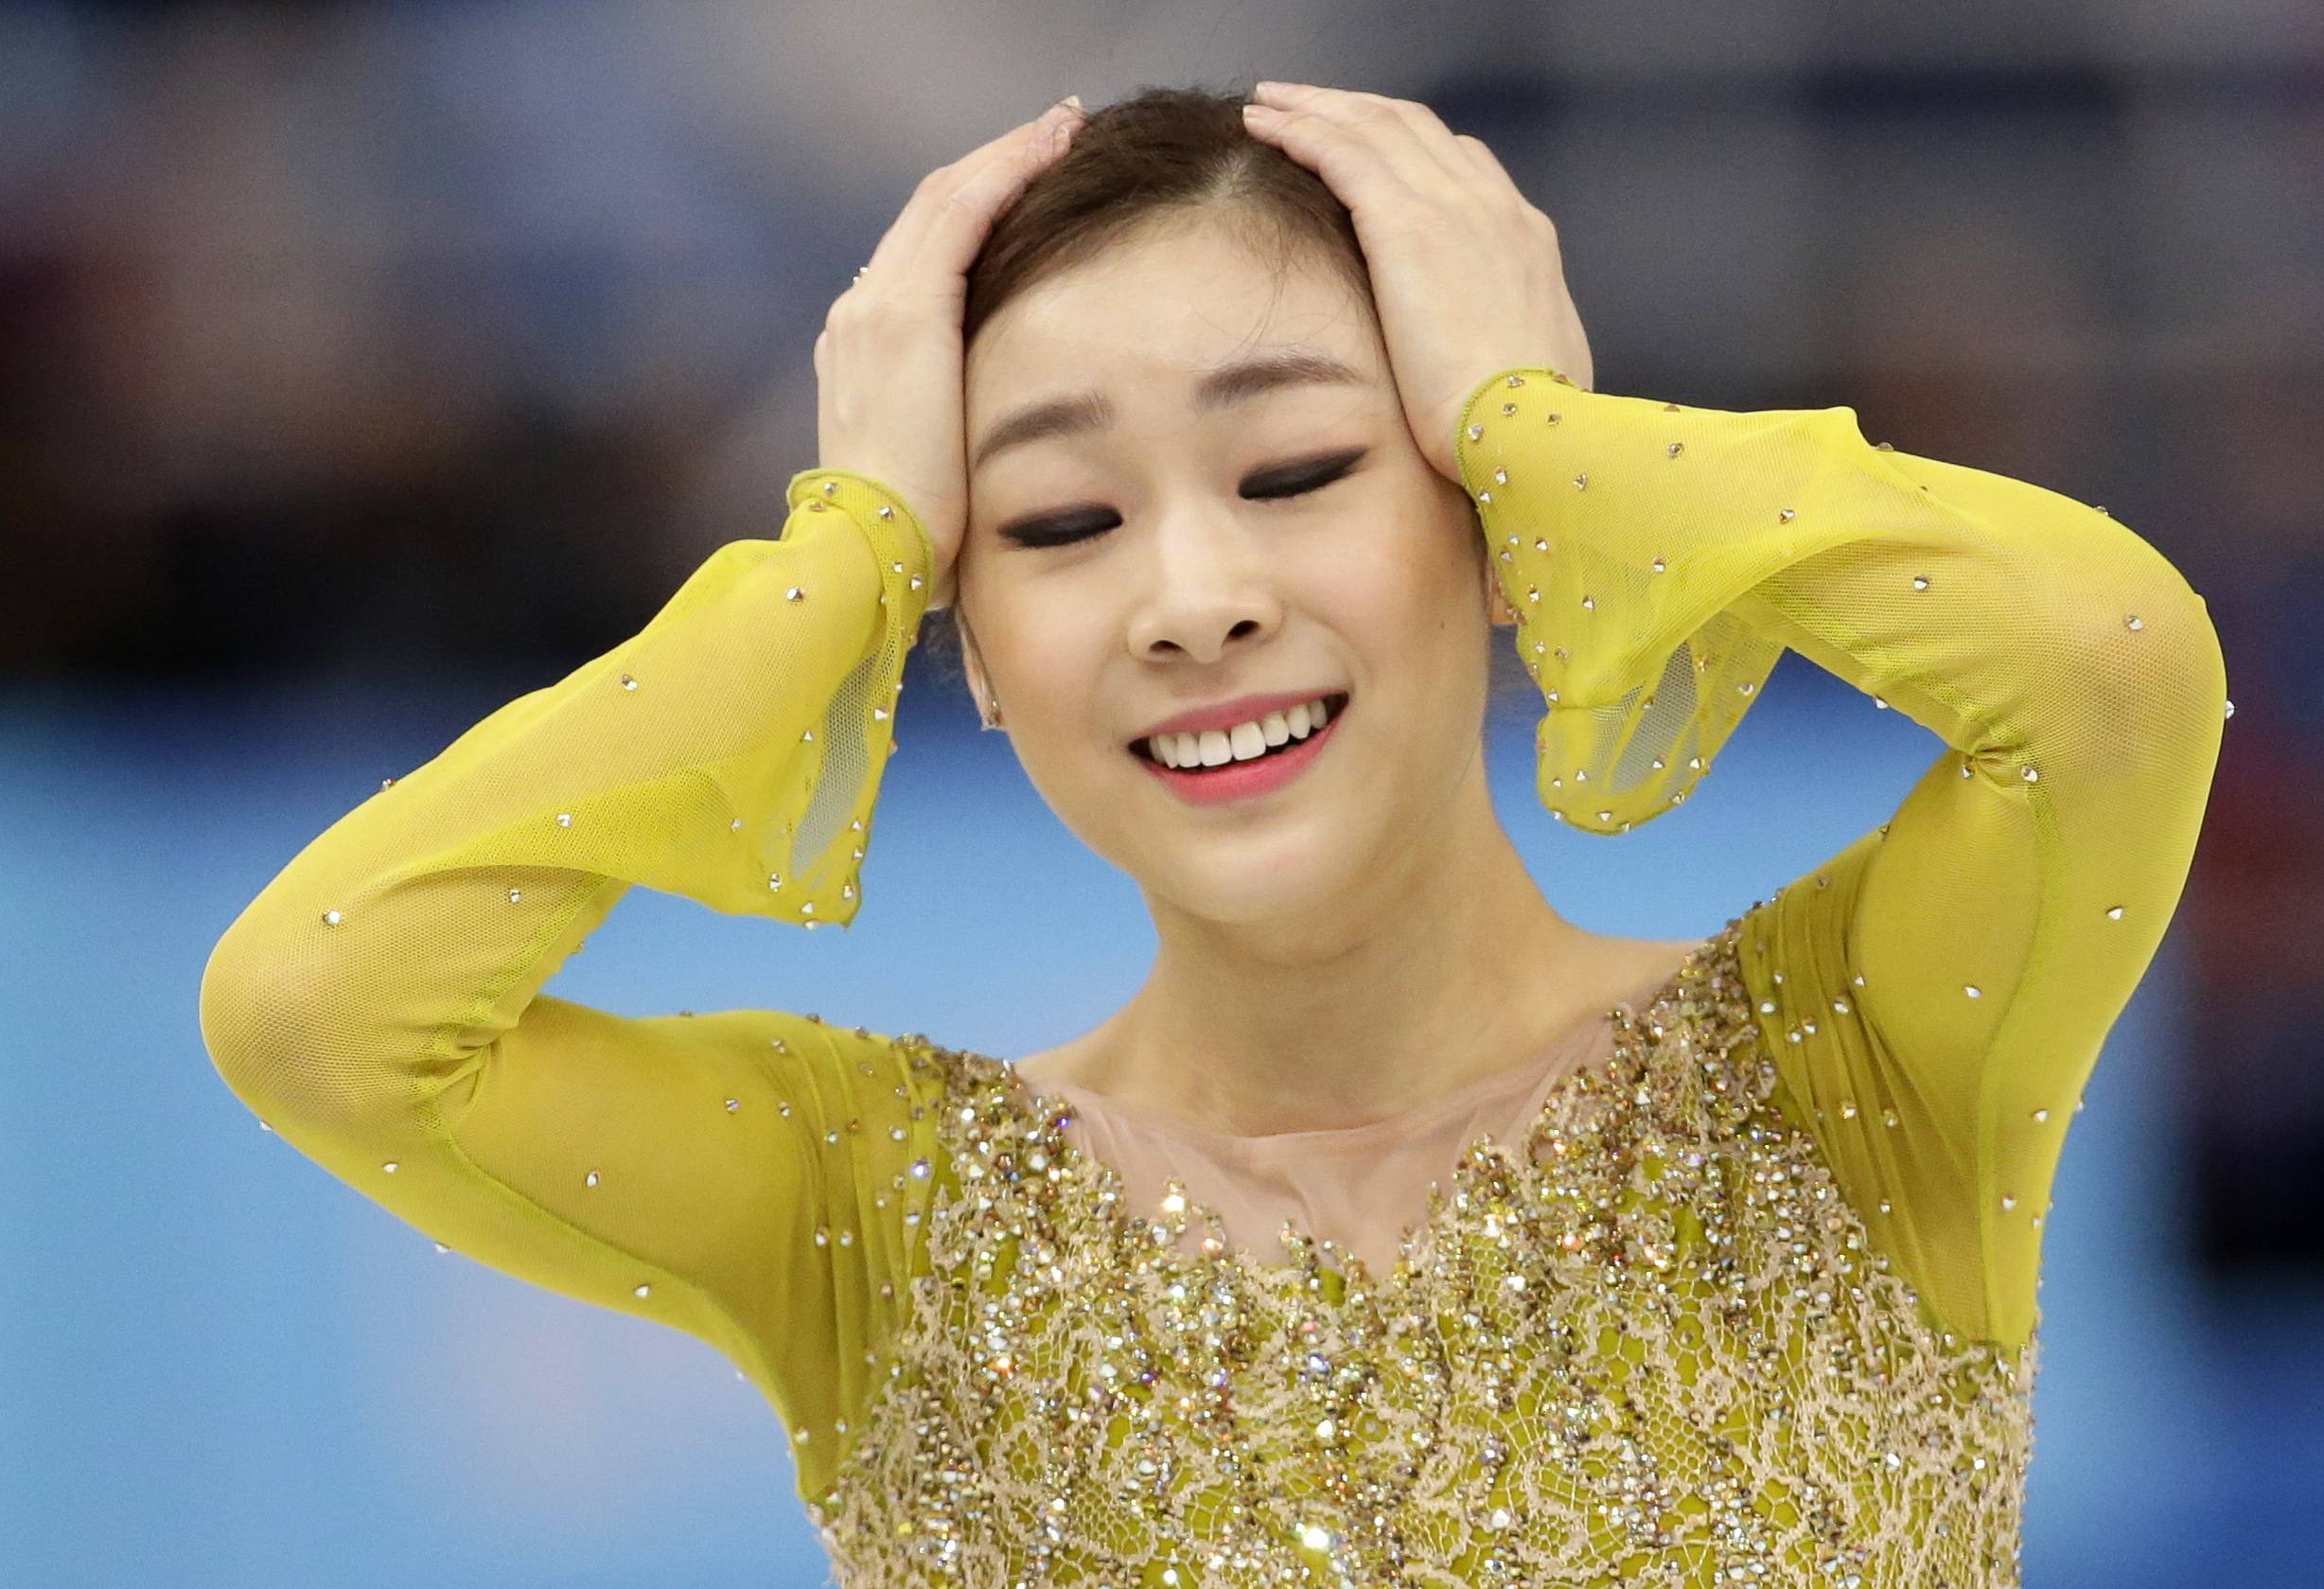 Yuna Kim of South Korea reacts after completing her routine in the women's short program figure skating competition at the Iceberg Skating Palace during the 2014 Winter Olympics, Wednesday, Feb. 19, 2014, in Sochi, Russia.